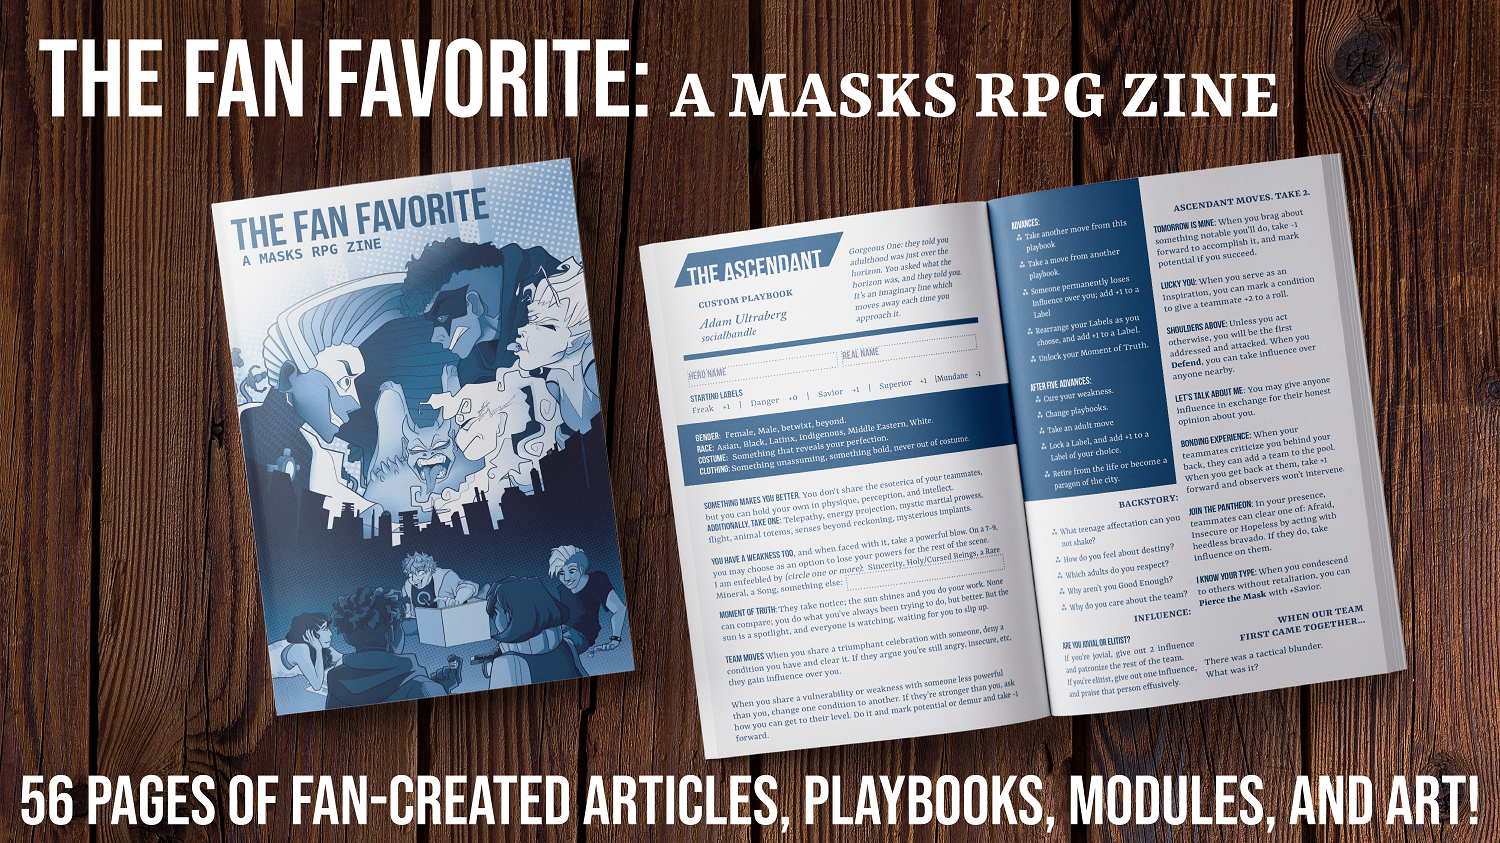 The Fan Favorite: A Masks RPG Fanzine